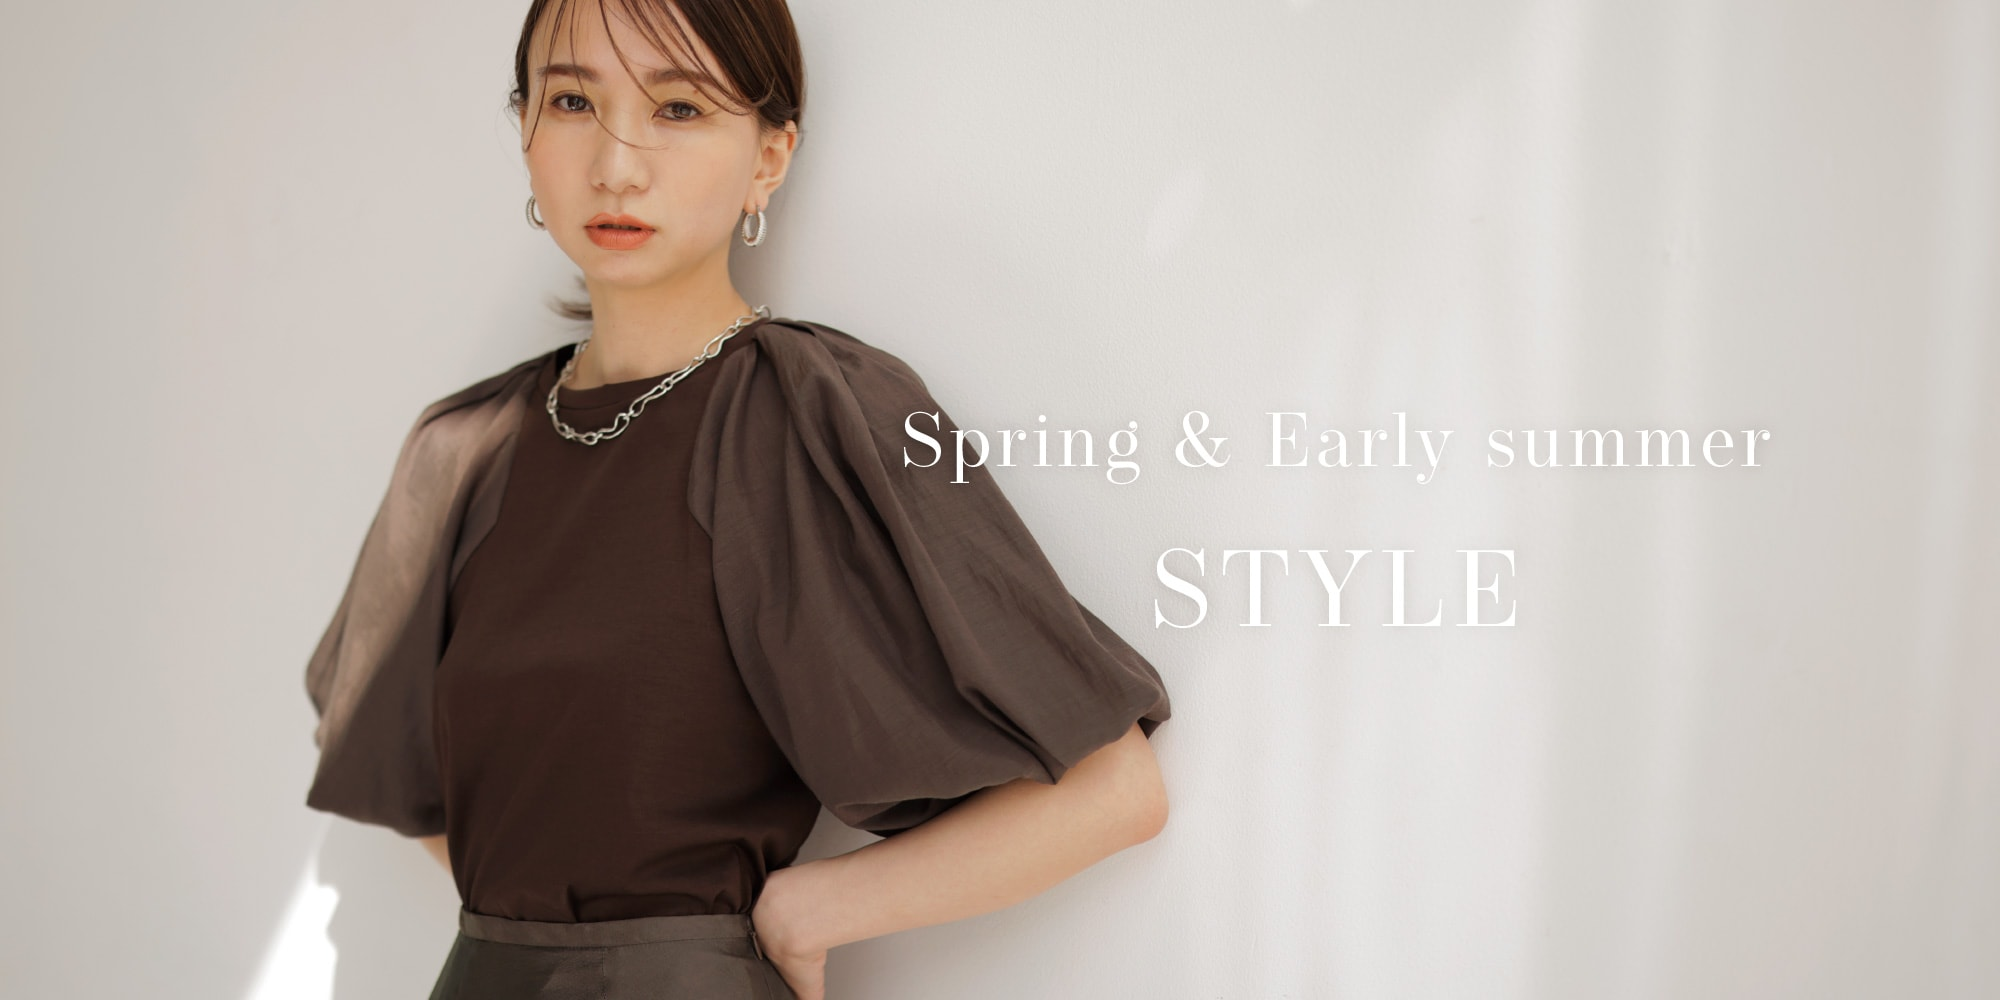 Spring & Early Summer STYLE